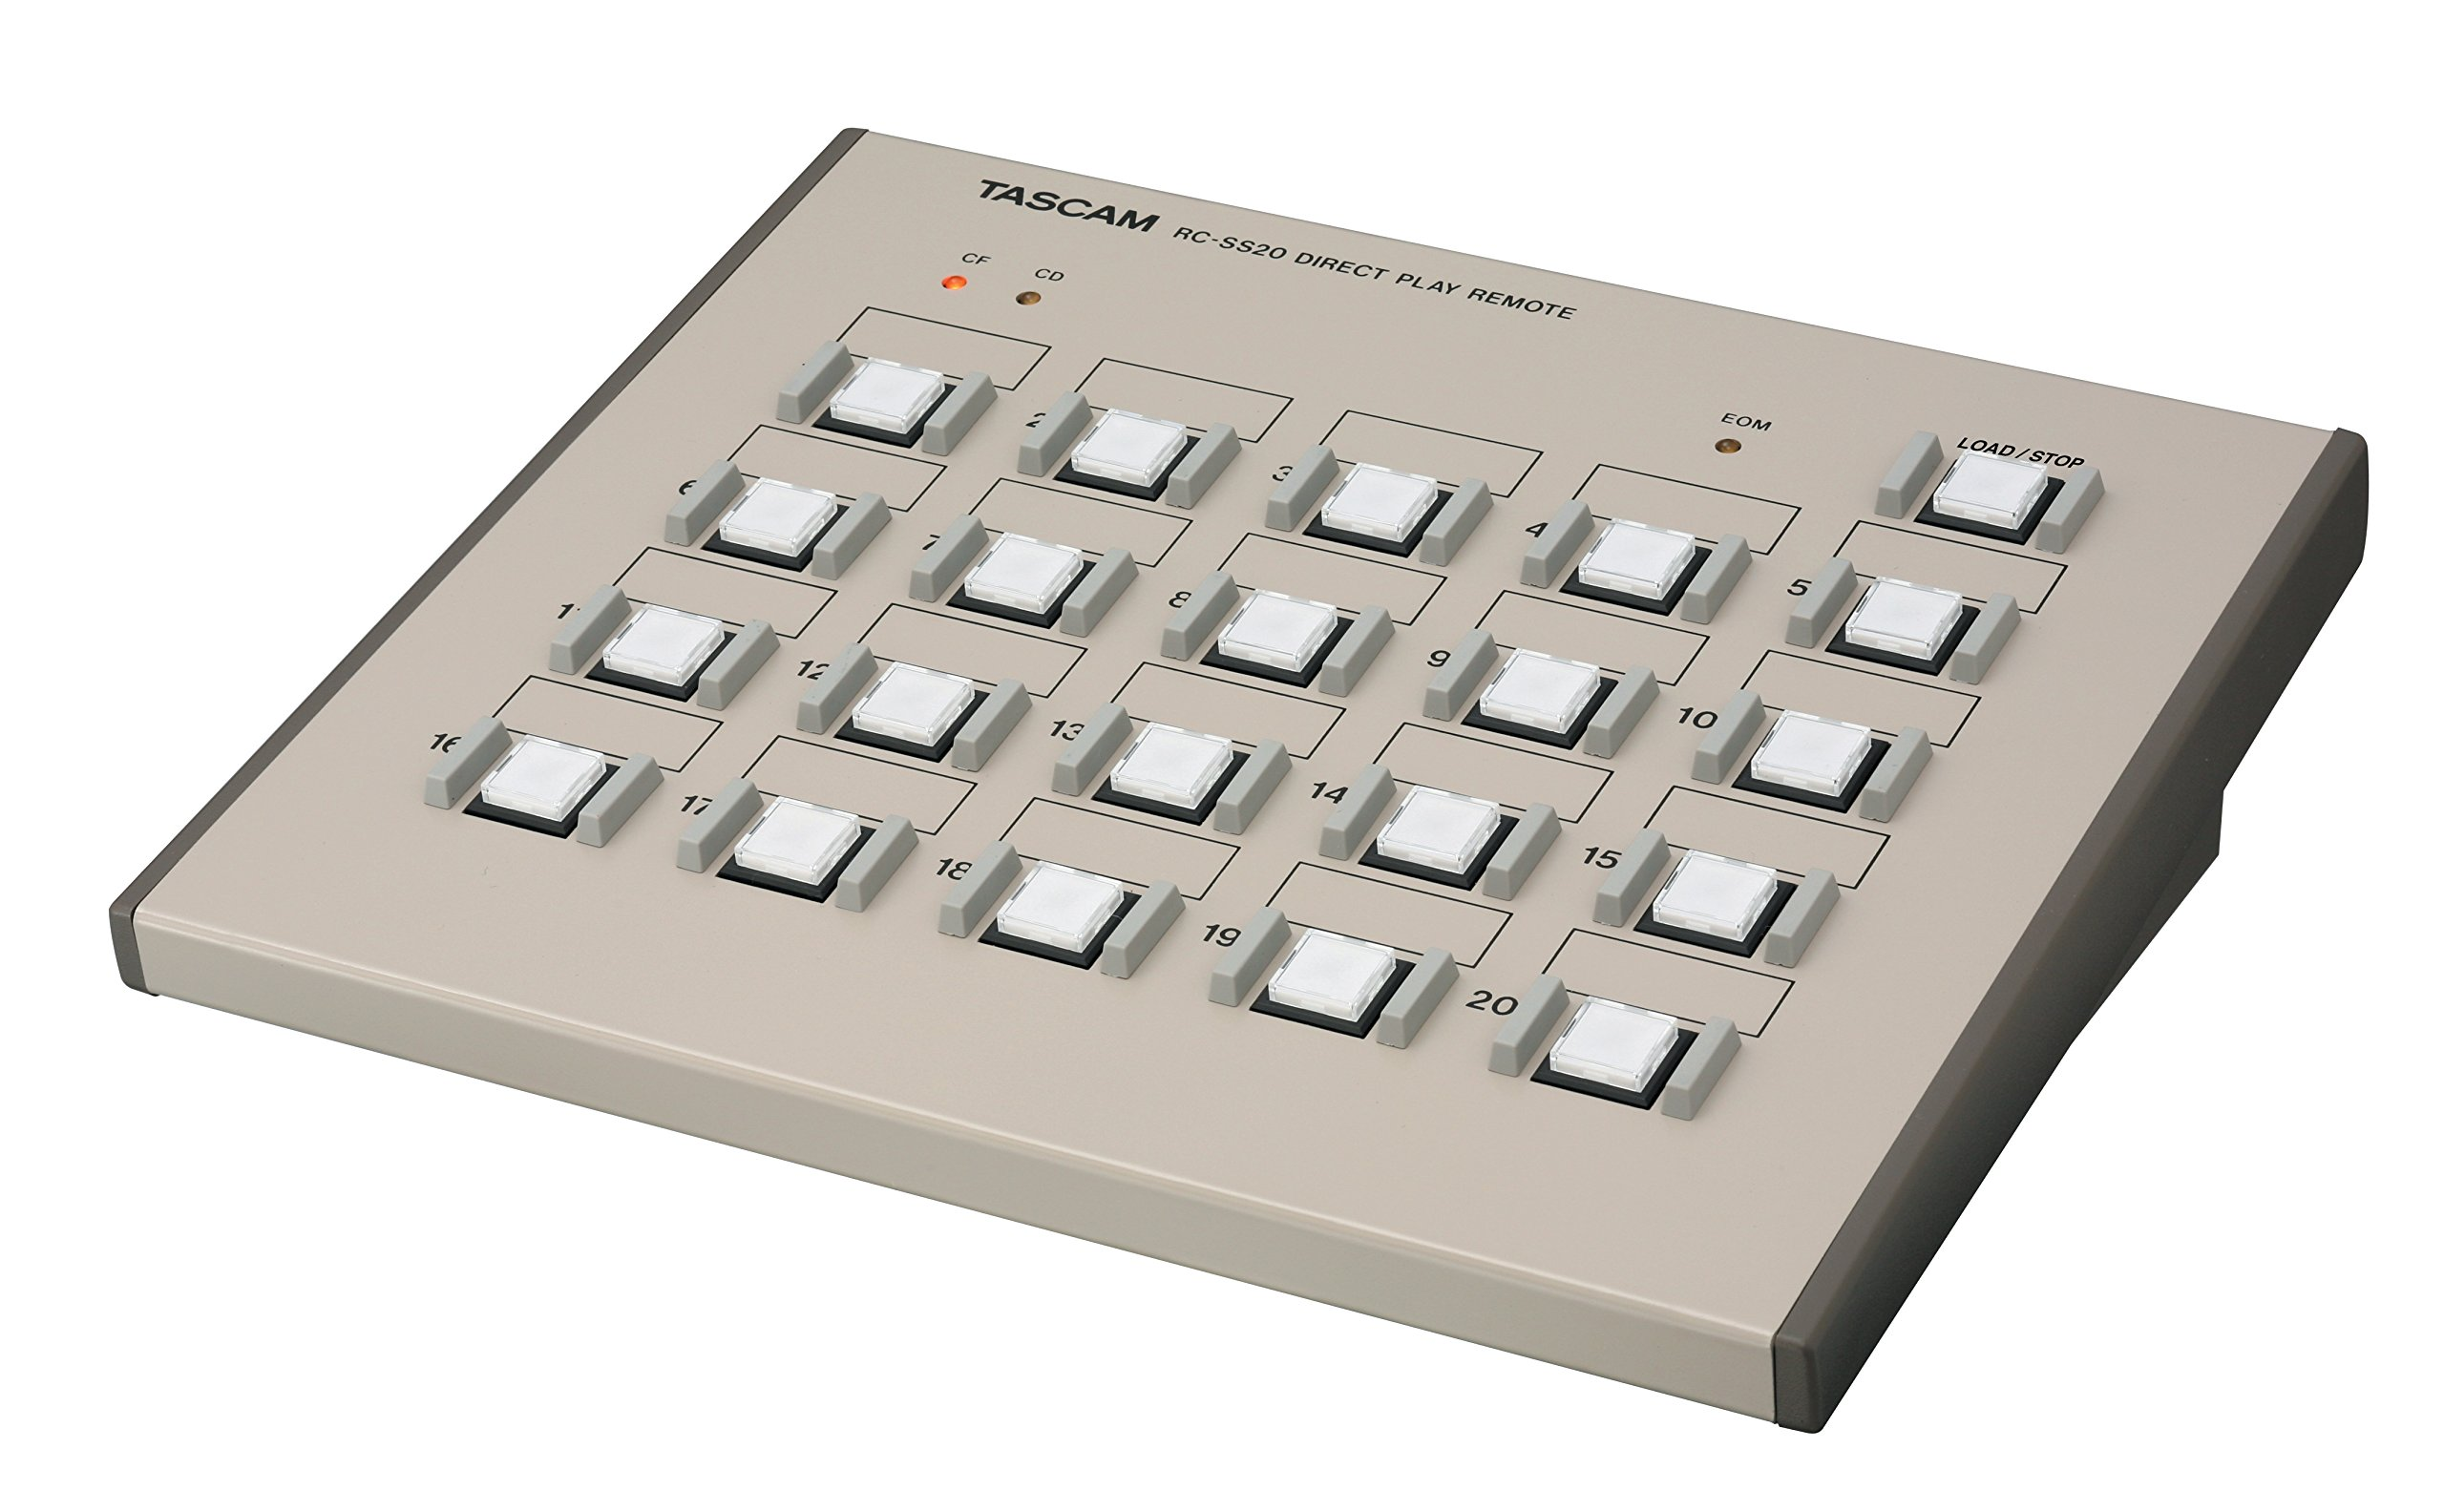 Tascam RC-SS20 Direct Play Remote for Solid State Recorders by Tascam (Image #4)